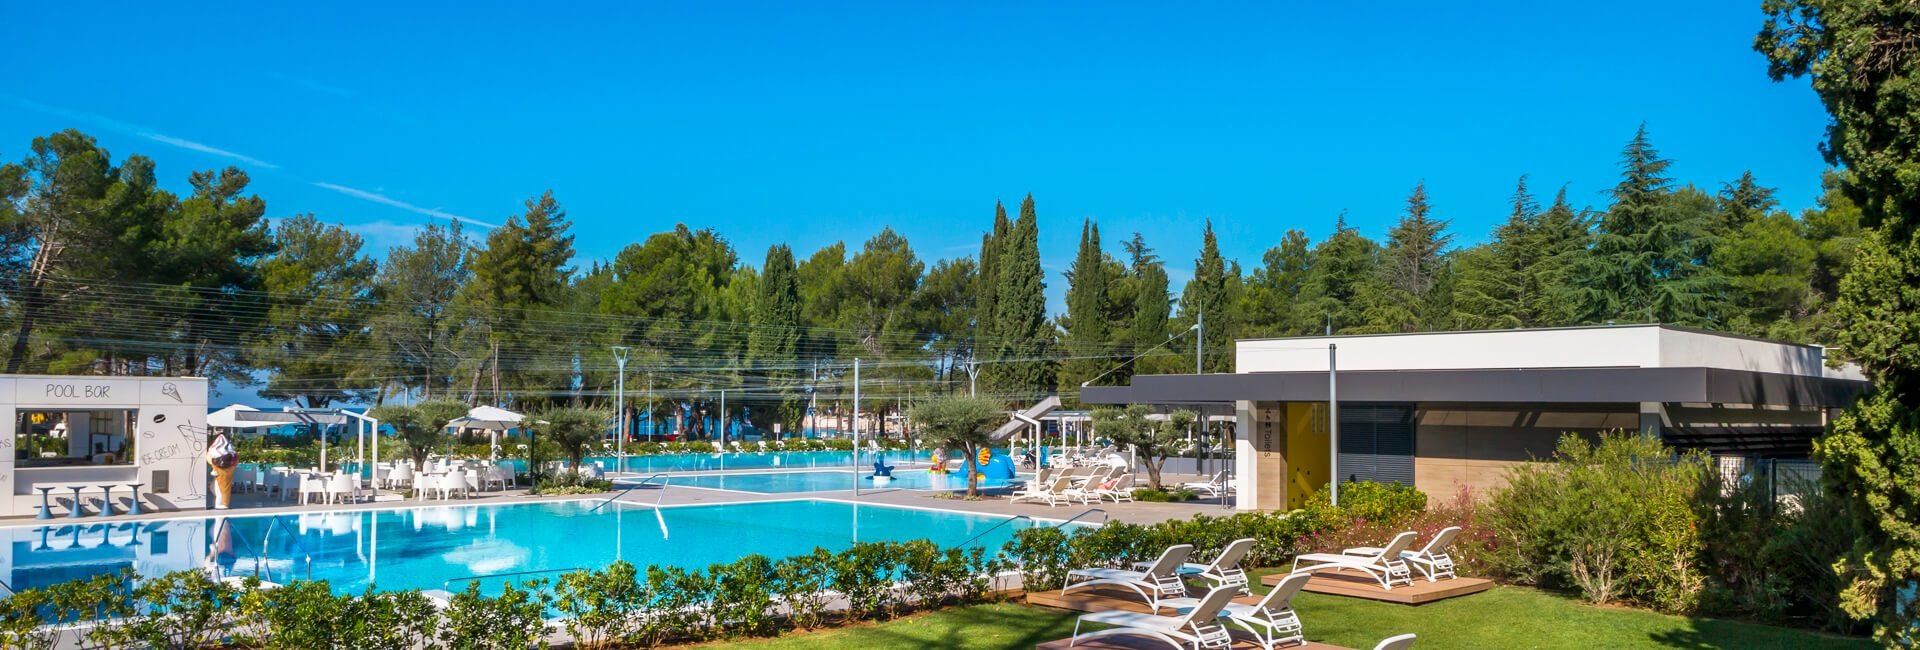 Camping Valkanela new pool by the beach